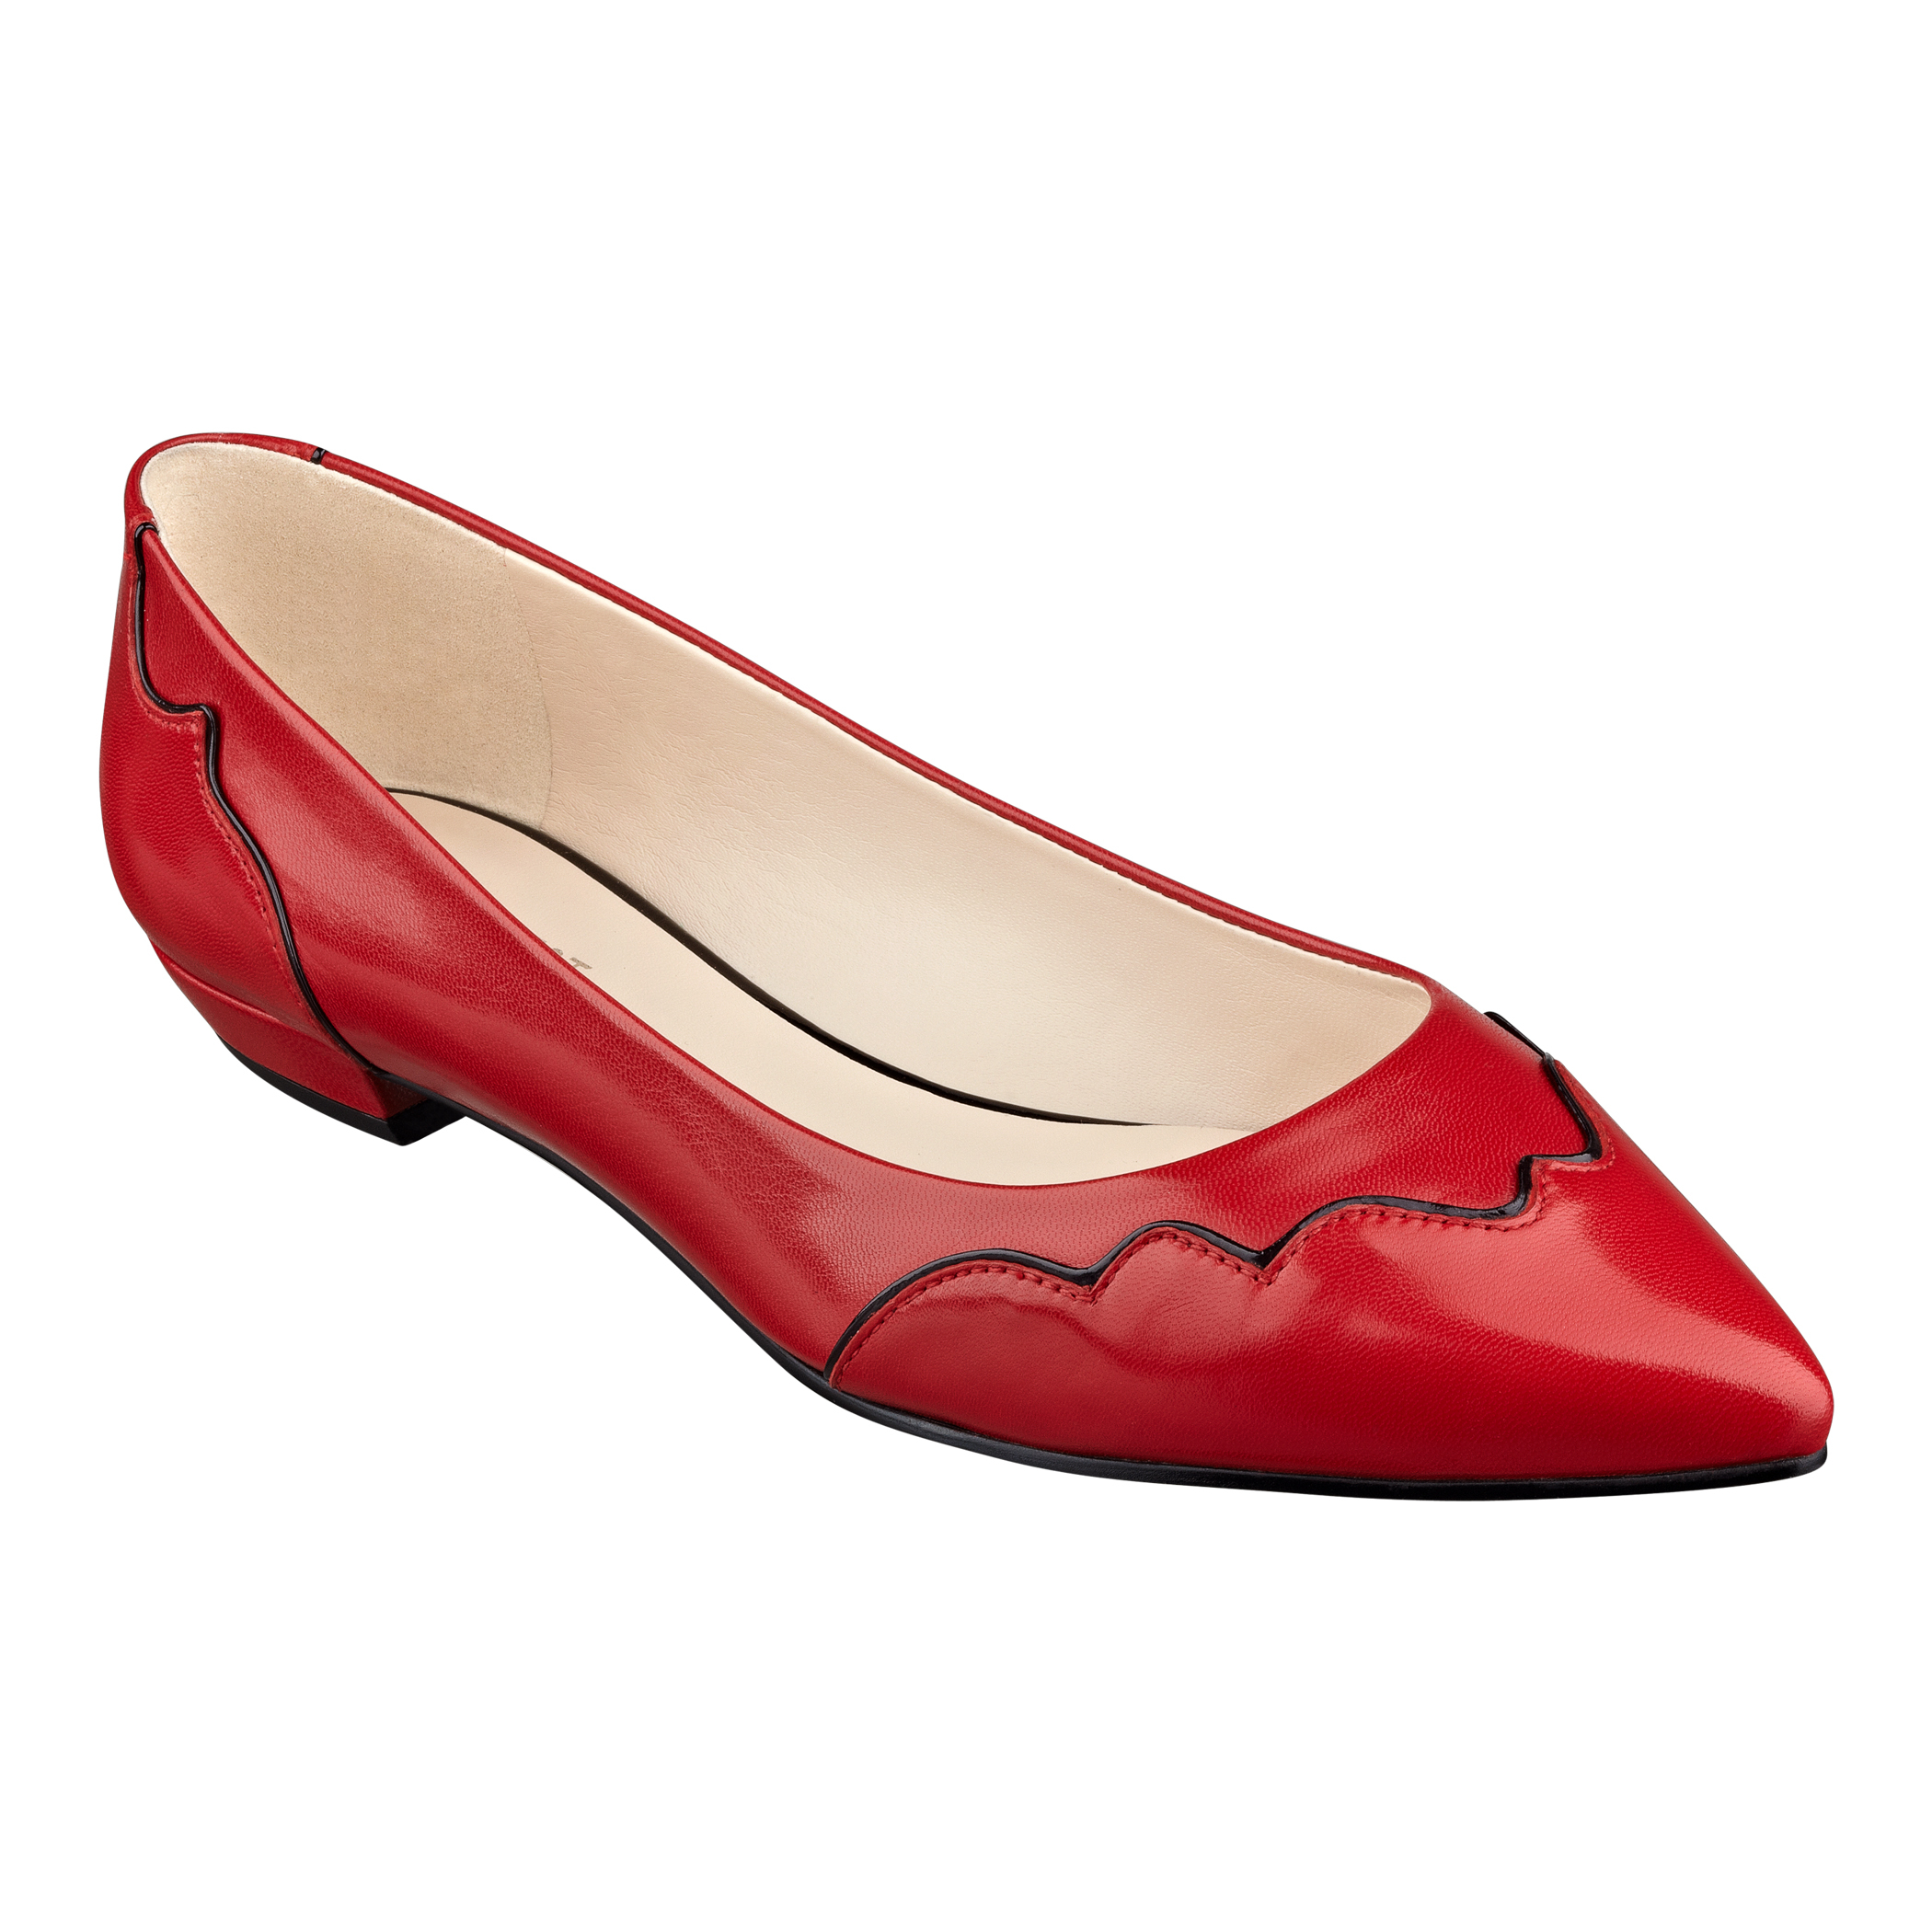 Givenchy Red Shoes